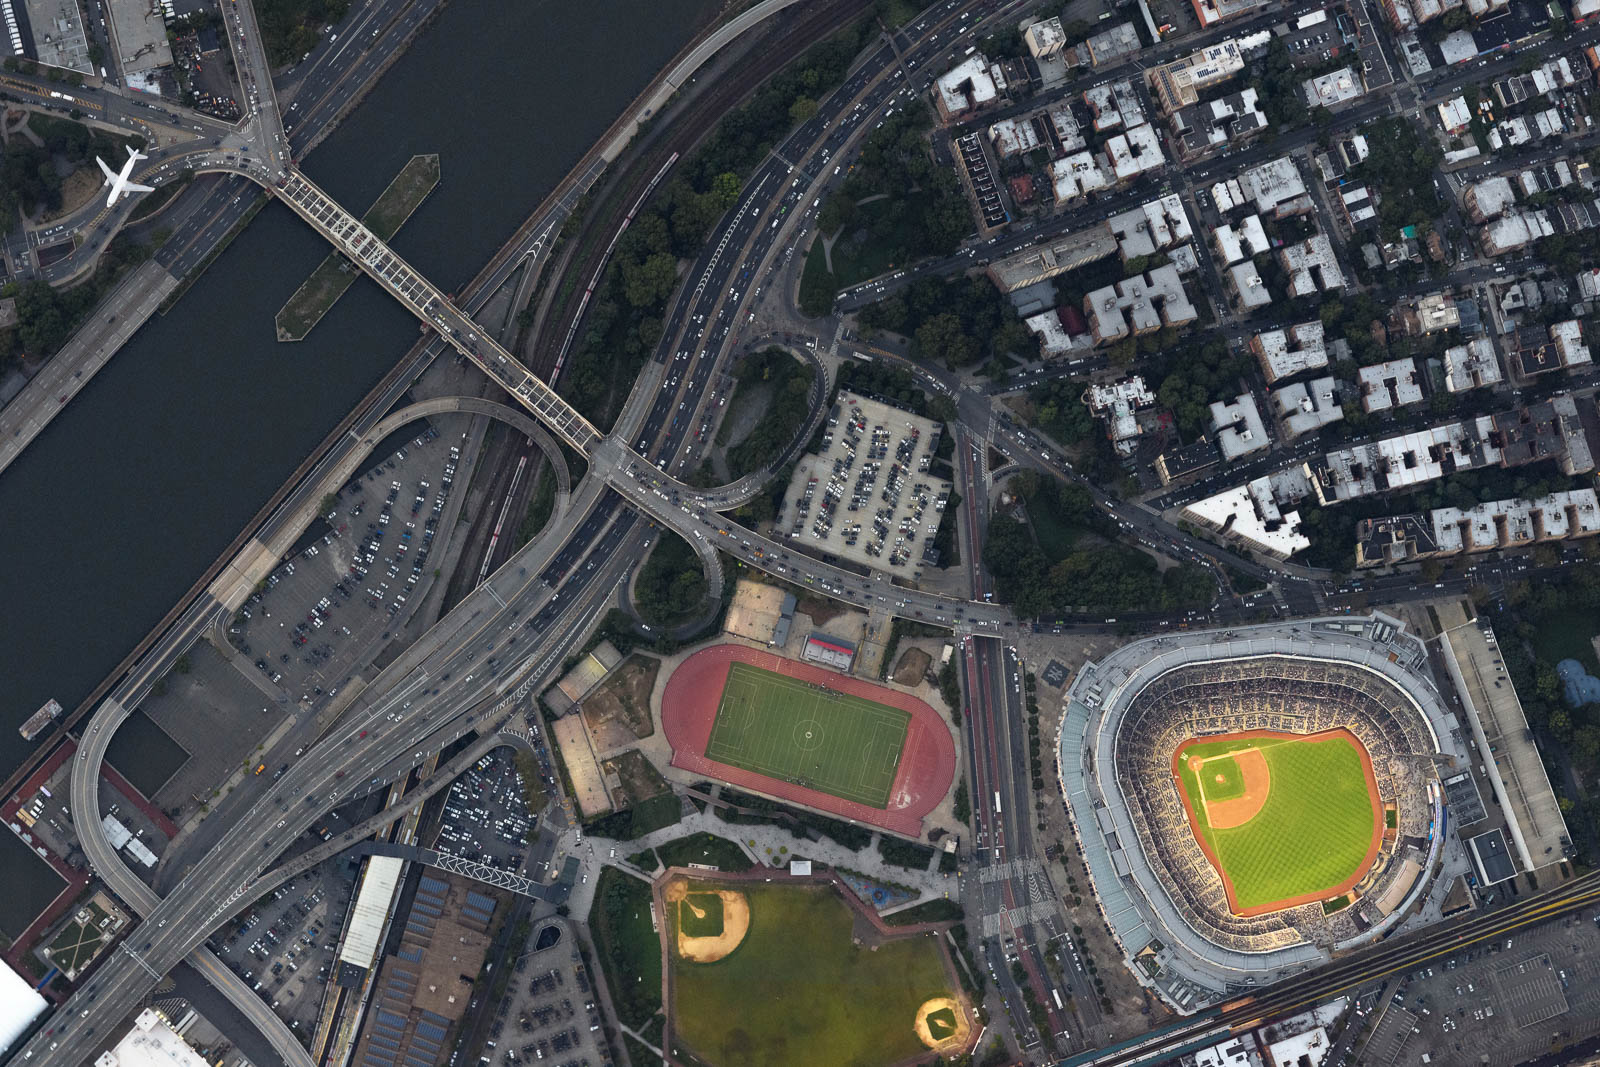 As the Yankees game starts, an airliner arrives to La Guardia airport